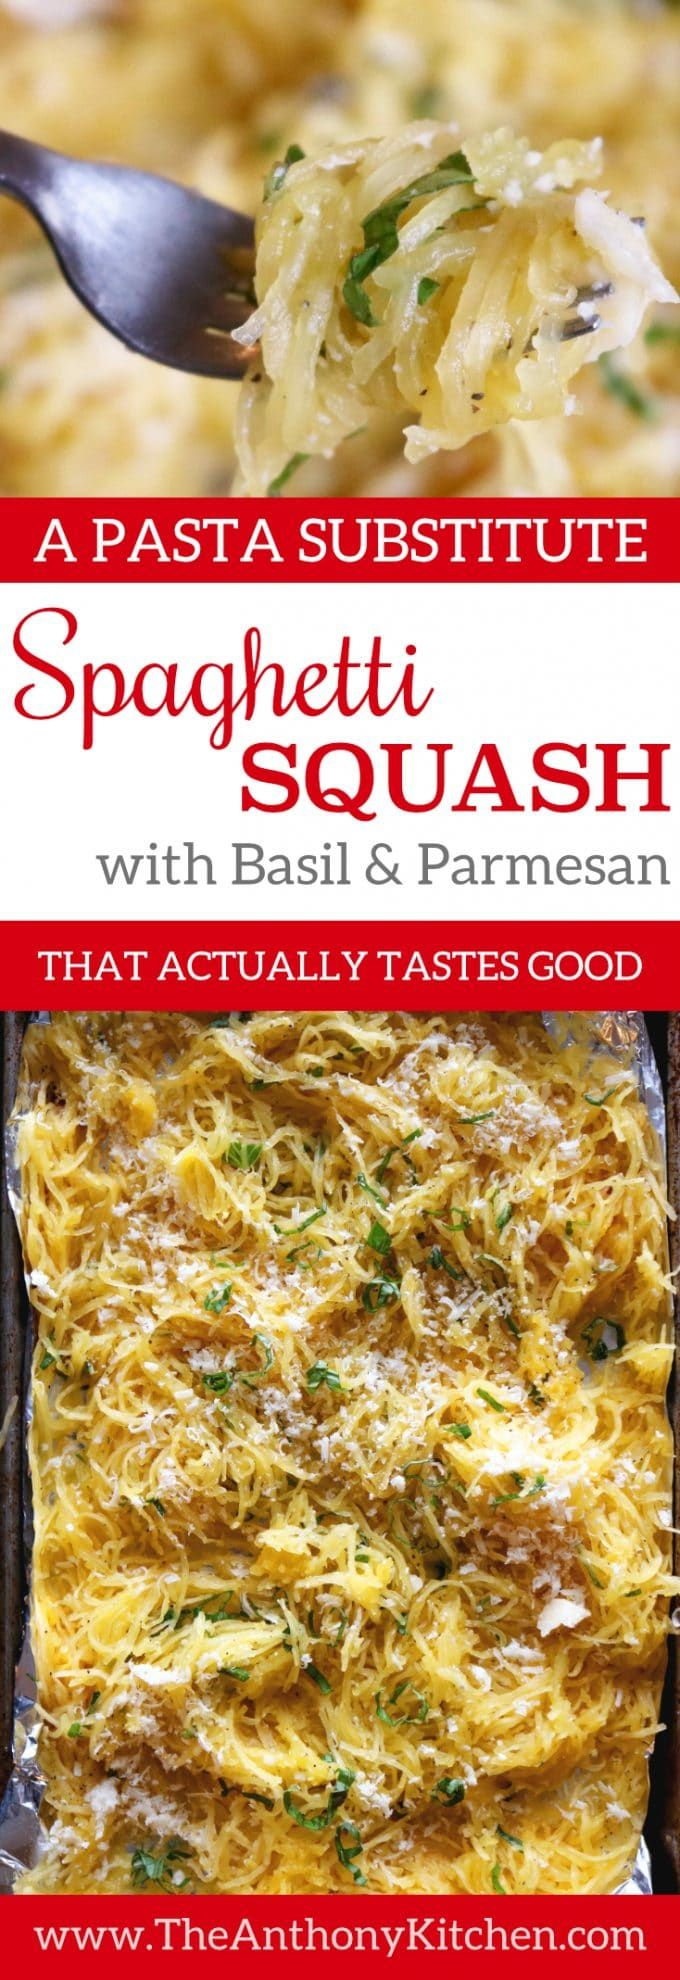 Healthy Vegetable Side Dish Recipe | A recipe for spaghetti squash featuring easy roasted spaghetti squash, fresh basil, and Parmesan cheese | #spaghettisquash #healthyrecipes #vegetablesidedish